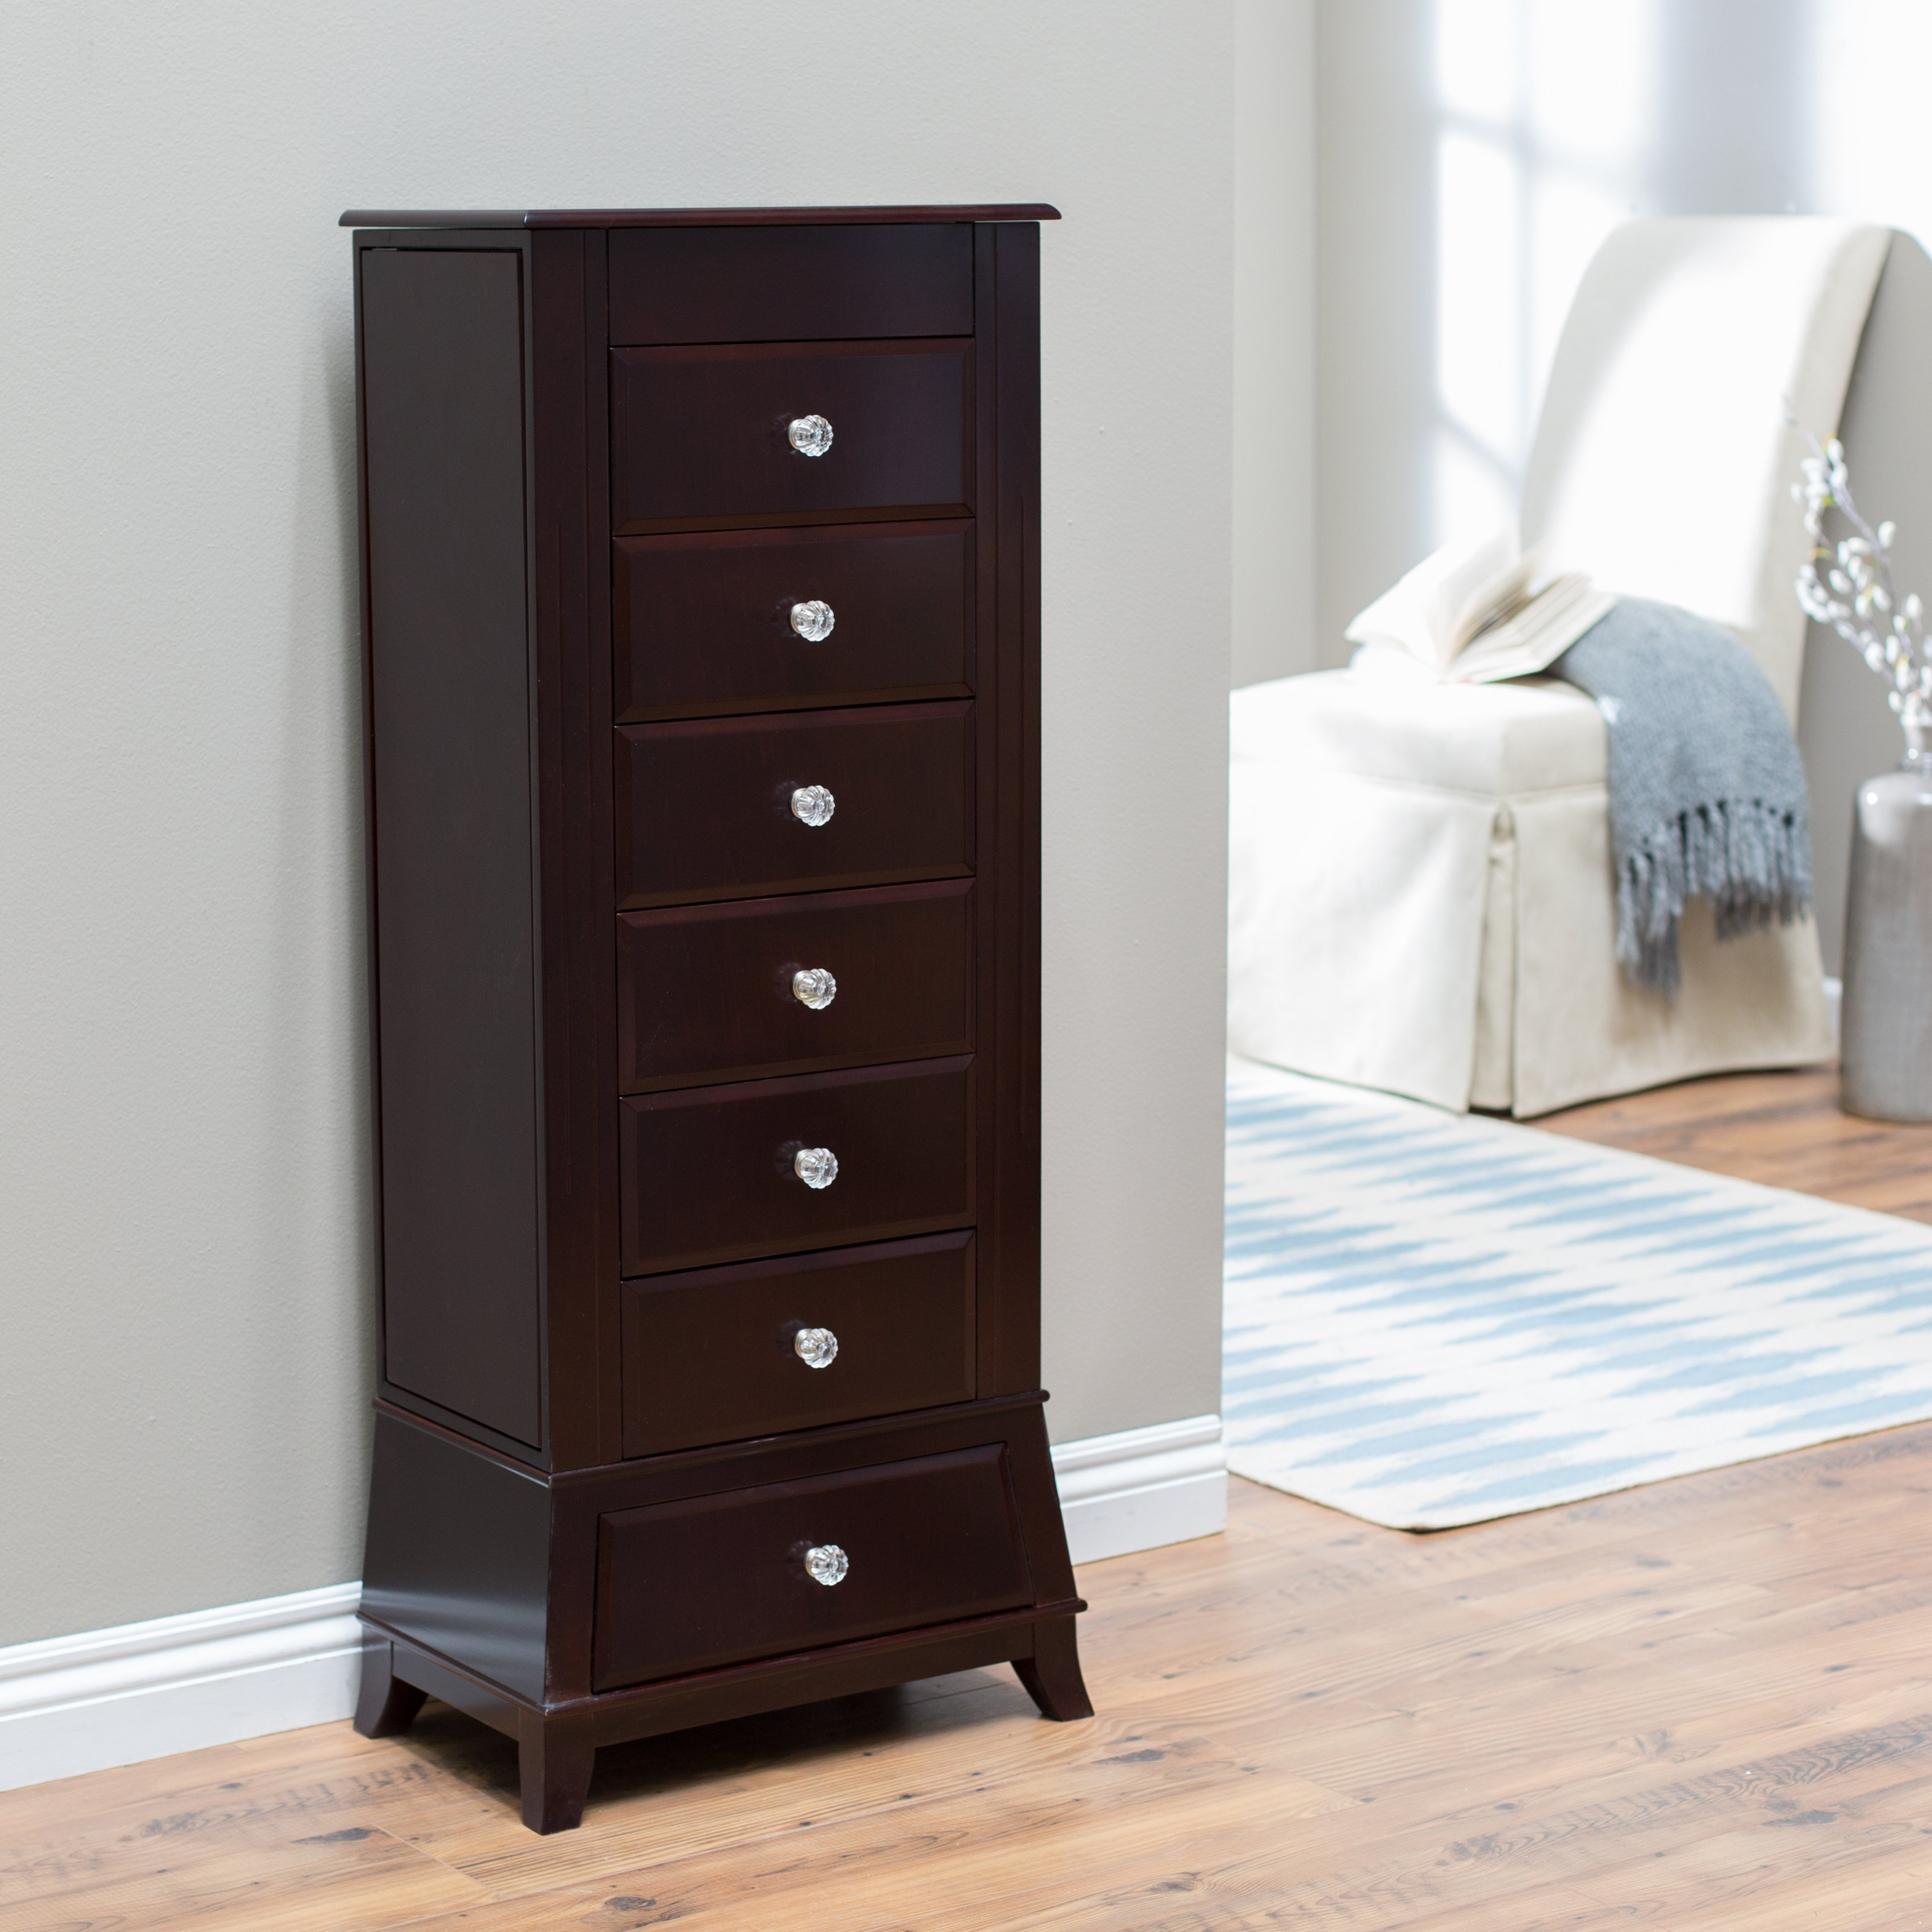 Armoire Baby Furniture | Armoire Furniture | Espresso Armoire Furniture